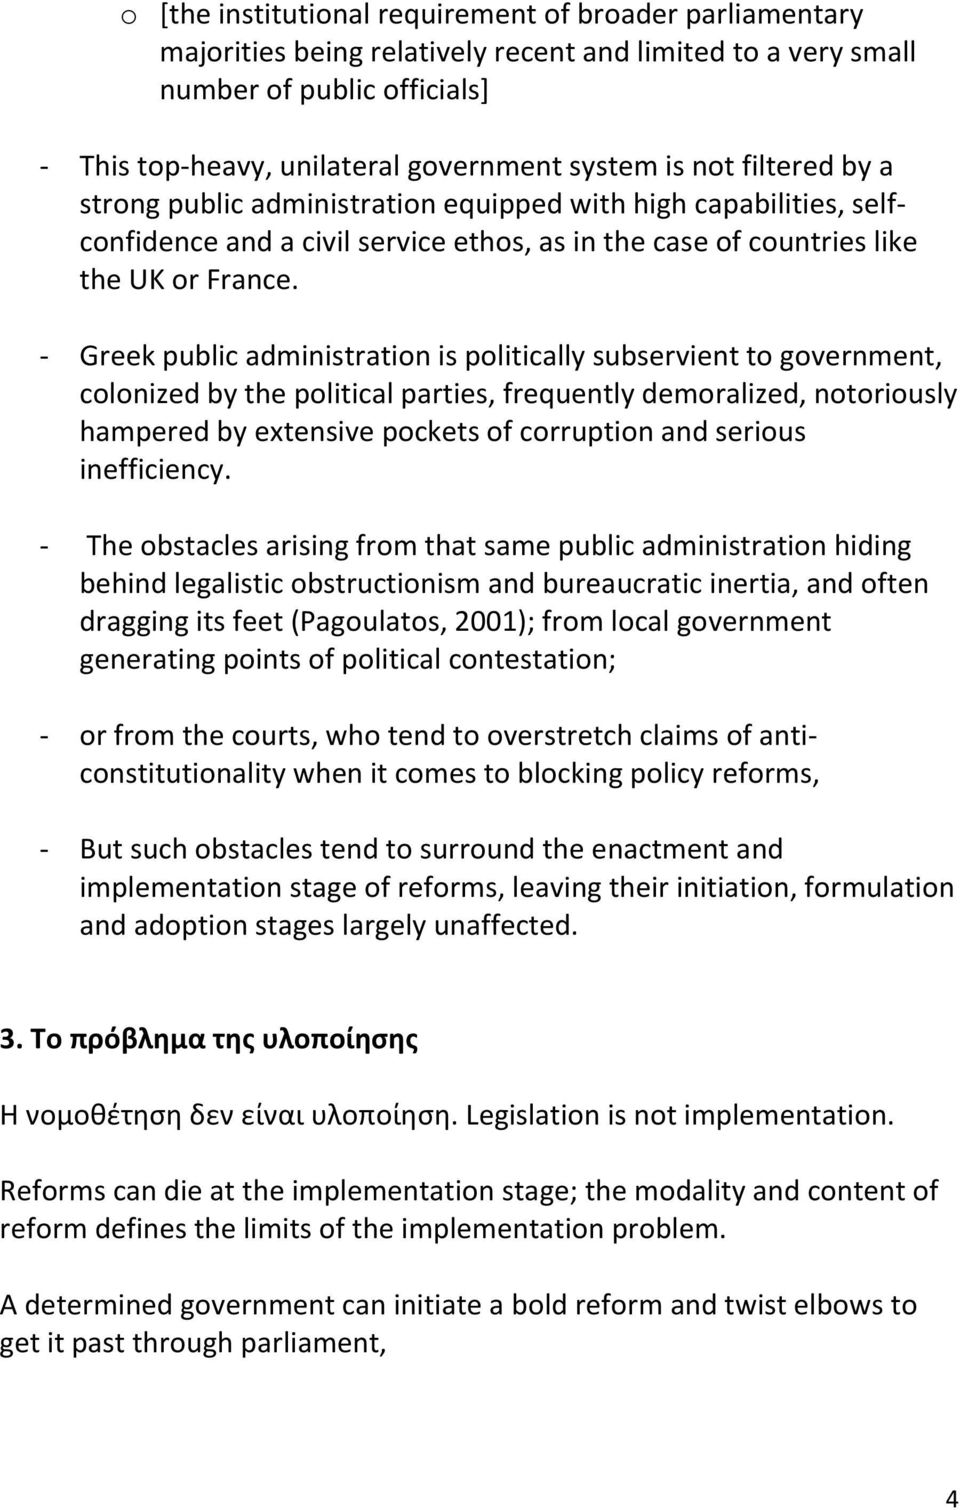 - Greek public administration is politically subservient to government, colonized by the political parties, frequently demoralized, notoriously hampered by extensive pockets of corruption and serious